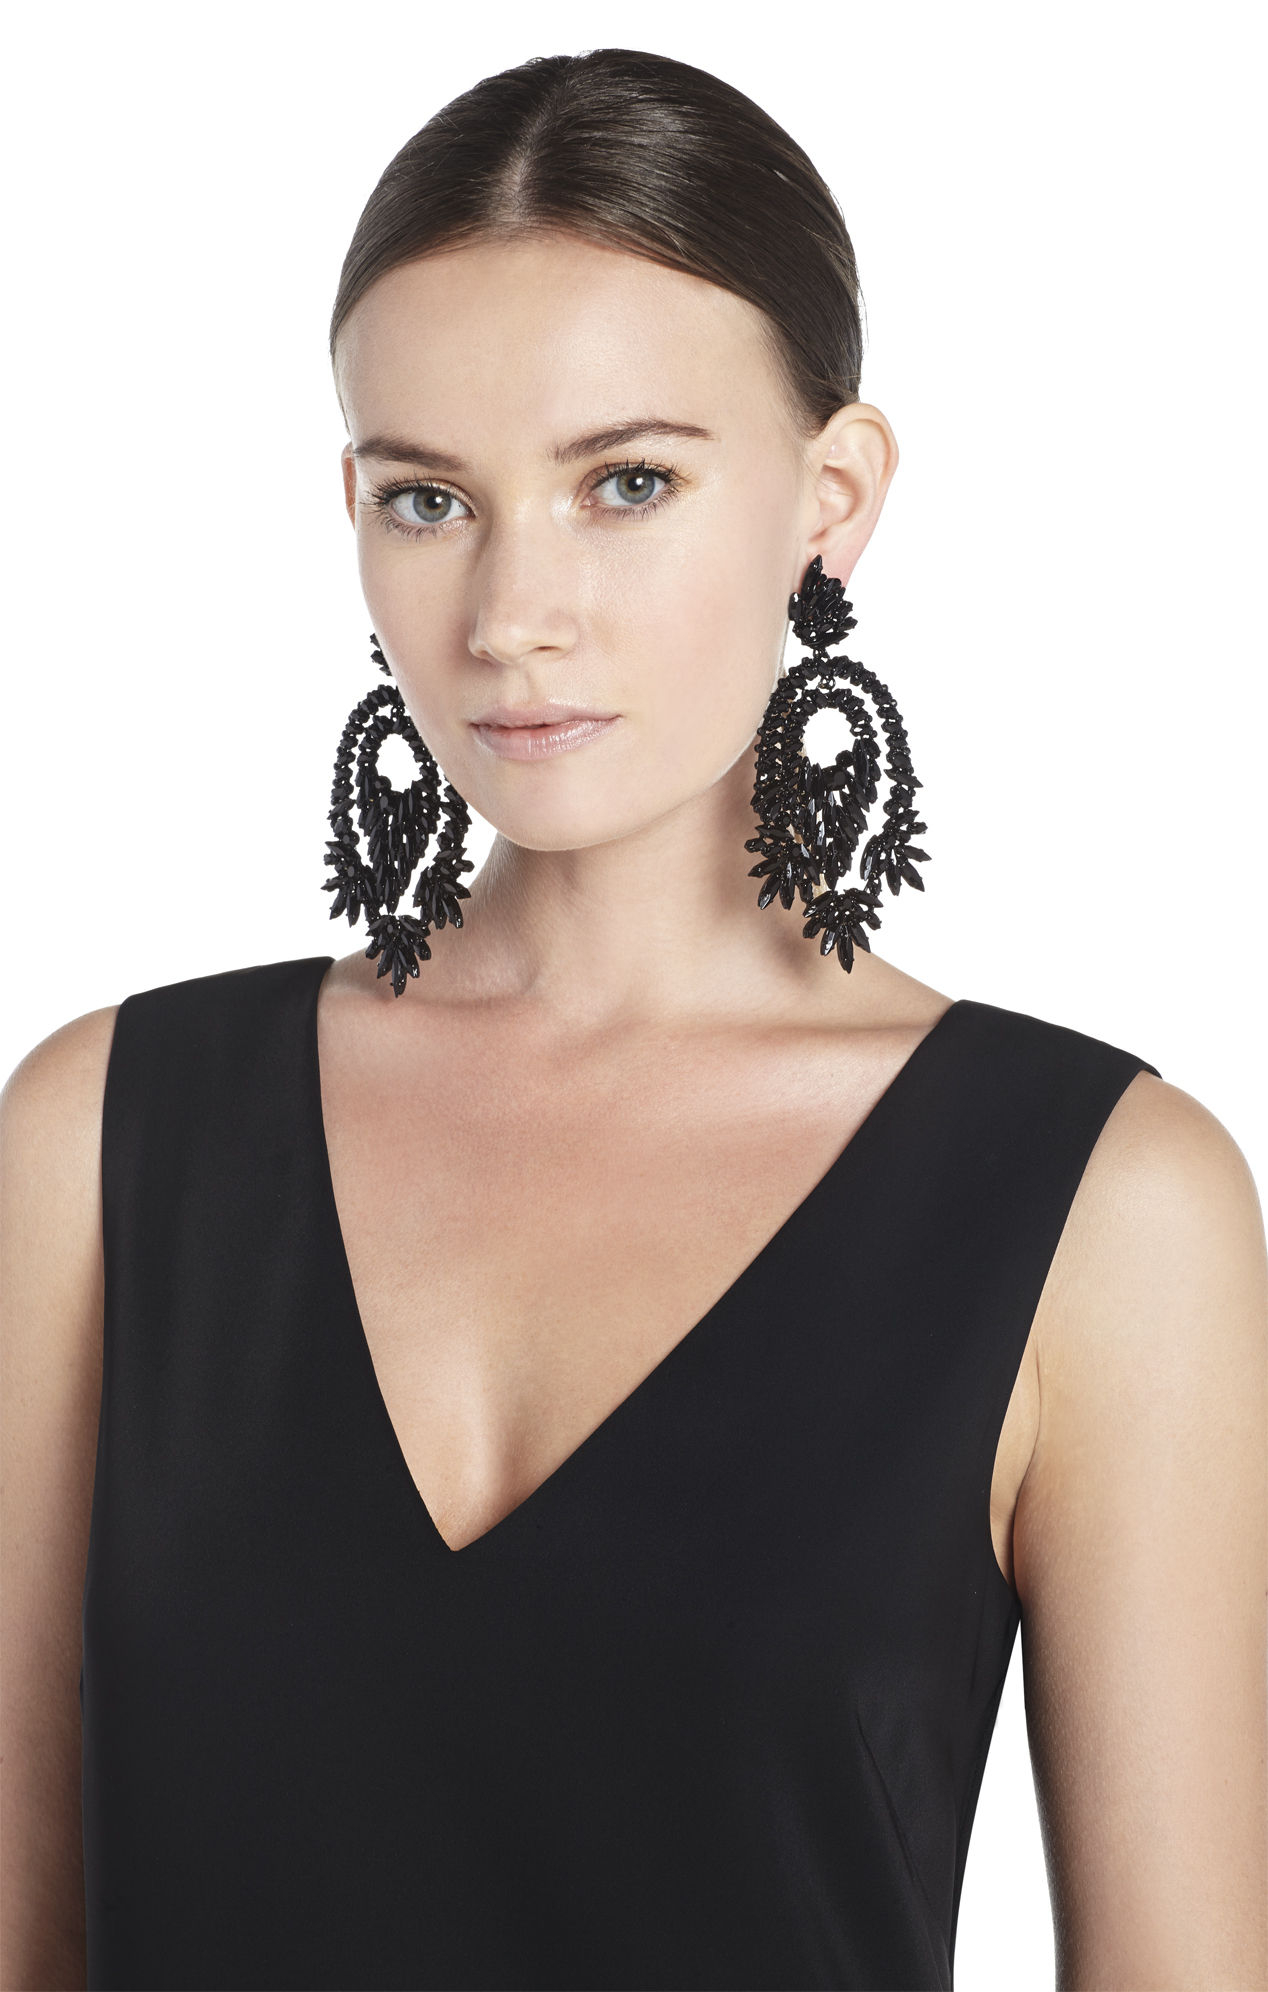 Bcbgmaxazria Oversized Rhinestone Cocktail Earrings in Black – Oversized Chandelier Earrings